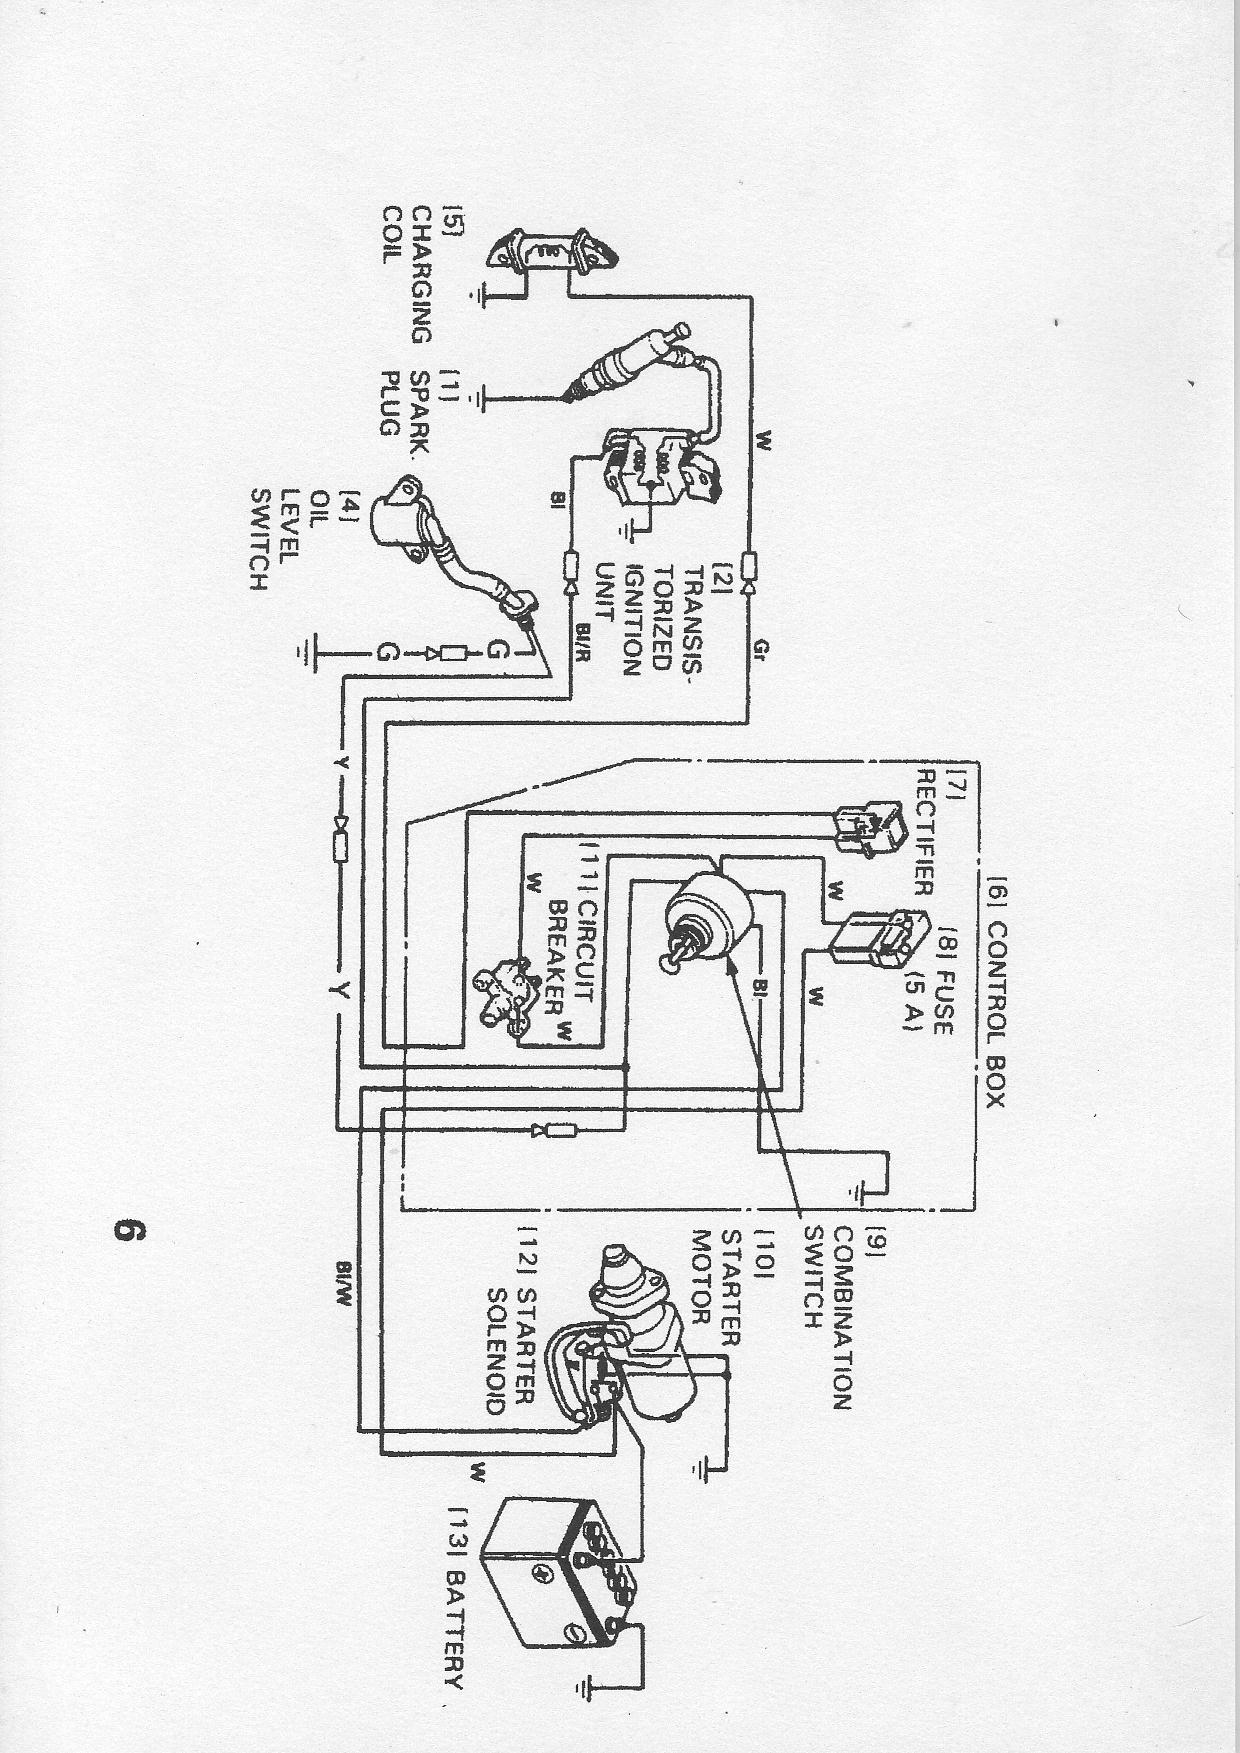 gx390 coil wiring diagram